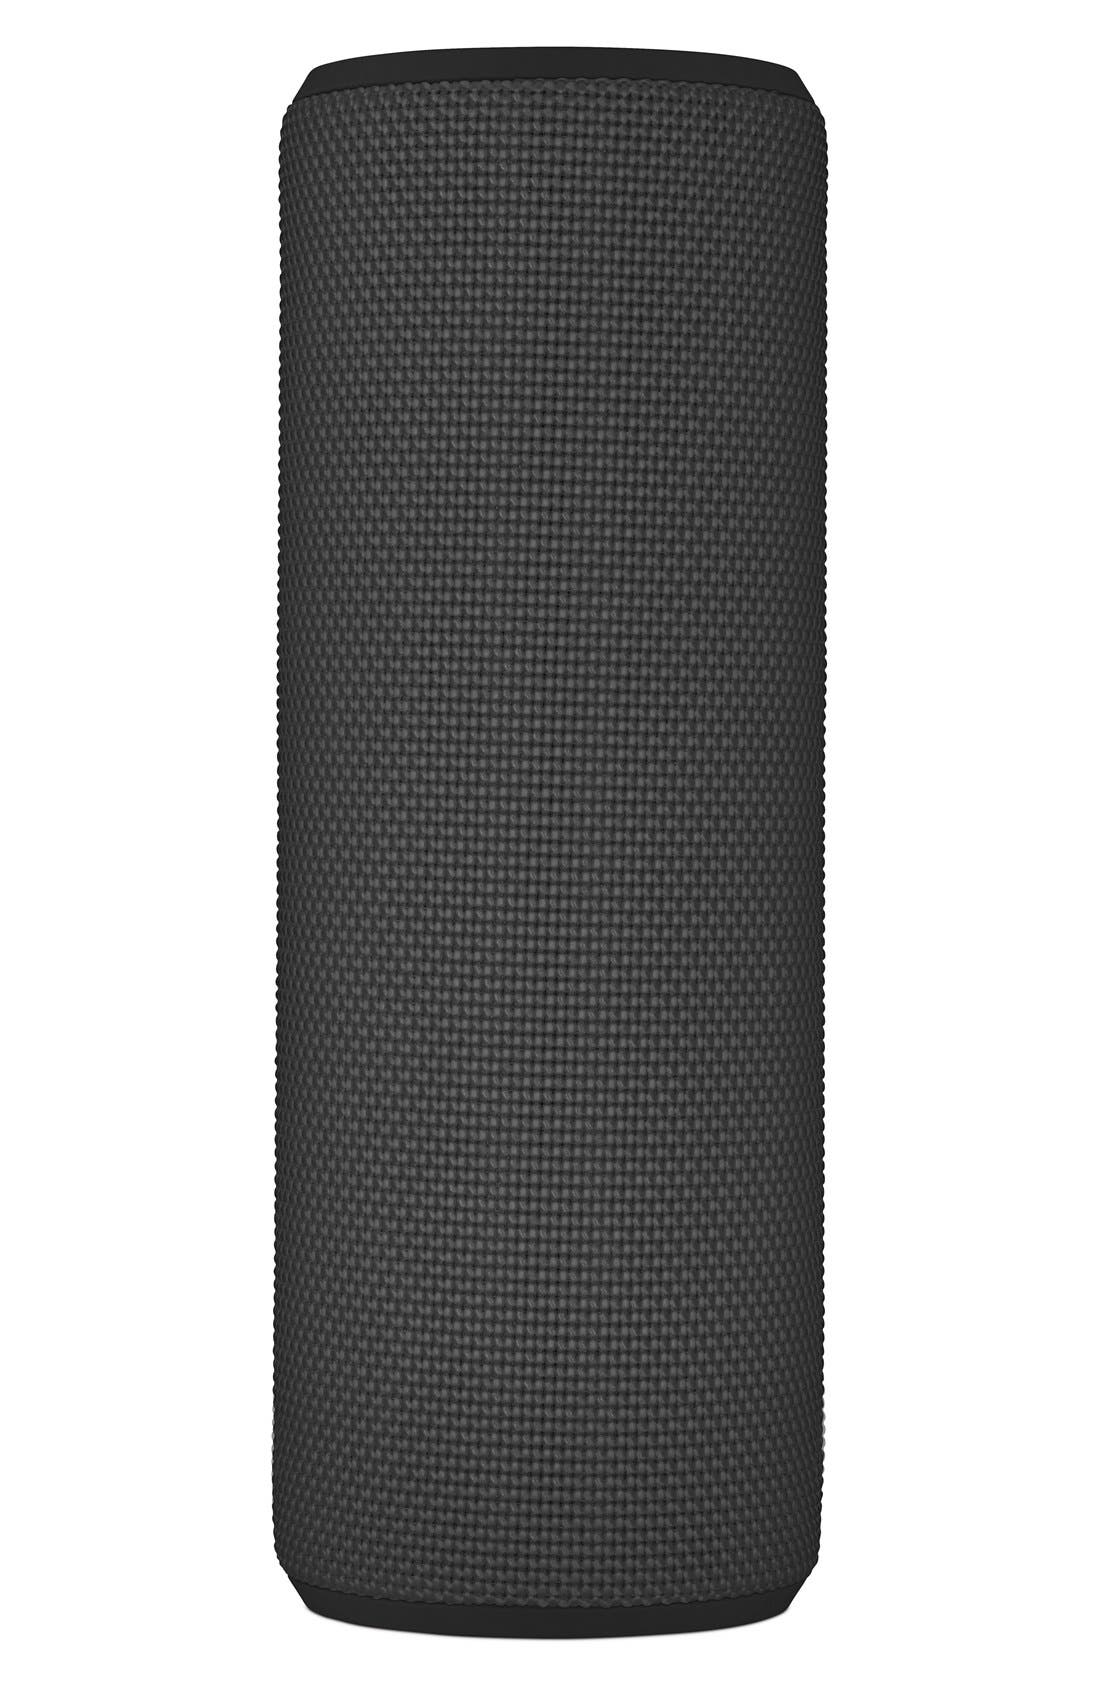 Boom 2 Wireless Bluetooth<sup>®</sup> Speaker,                             Alternate thumbnail 3, color,                             Black/ Grey